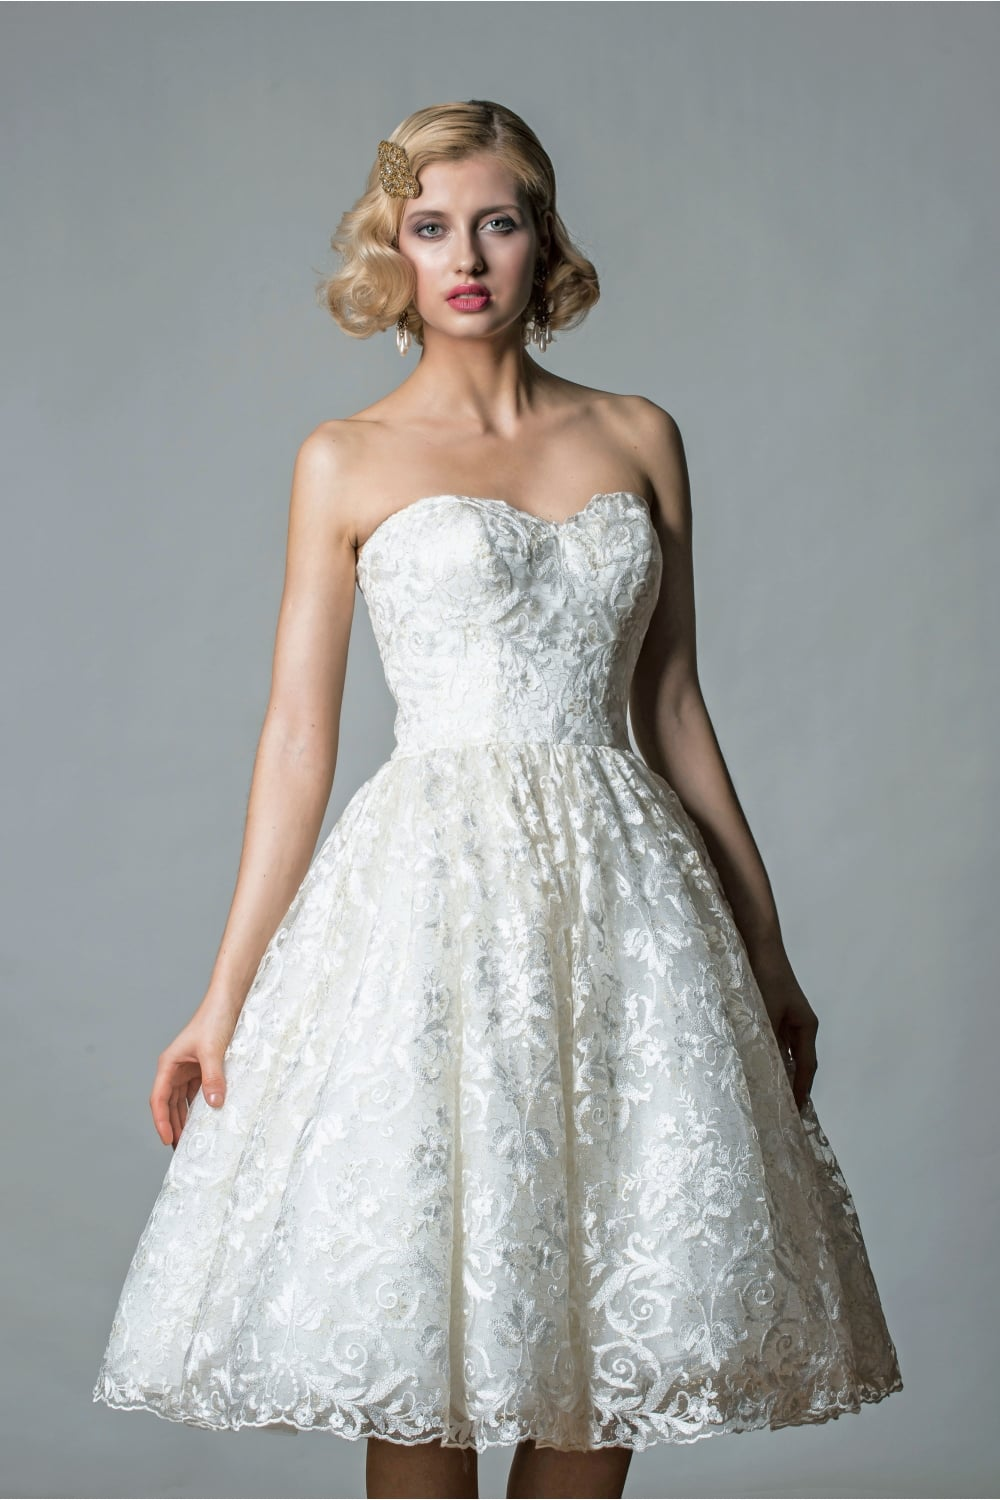 1062 Emily Tea Length Vintage Inspired Gold Lace Short Wedding Gown